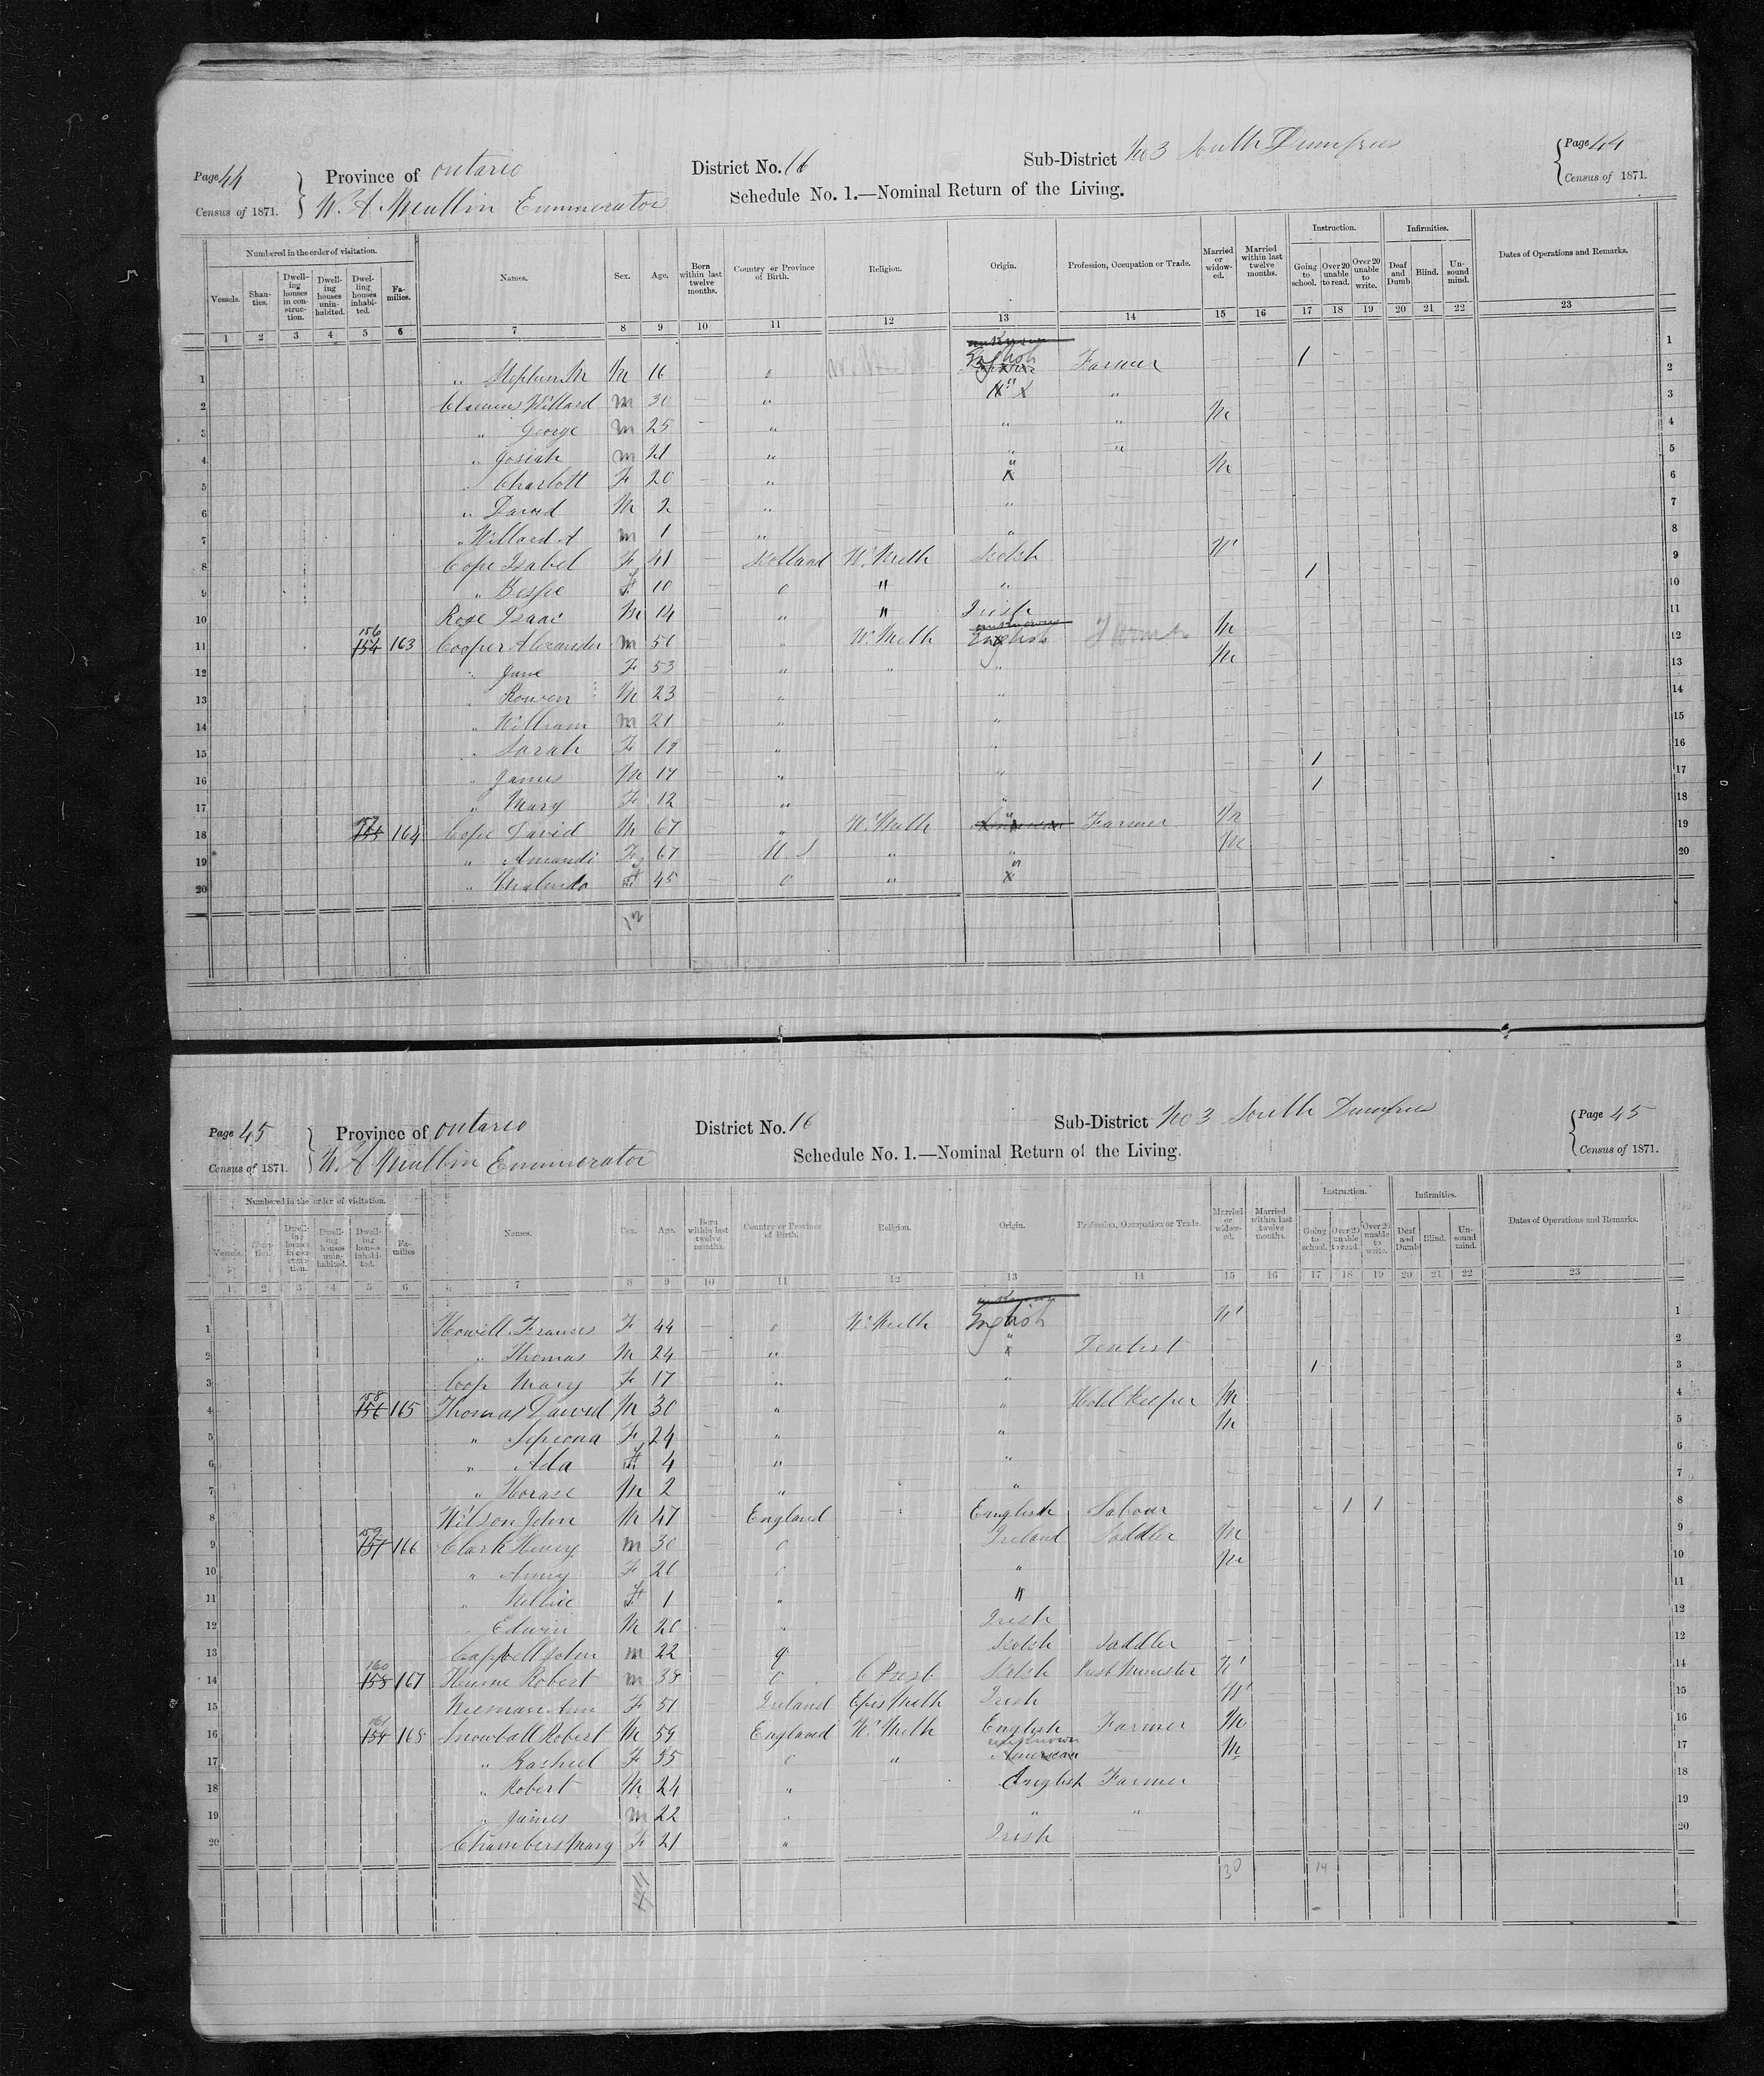 Title: Census of Canada, 1871 - Mikan Number: 142105 - Microform: c-9915